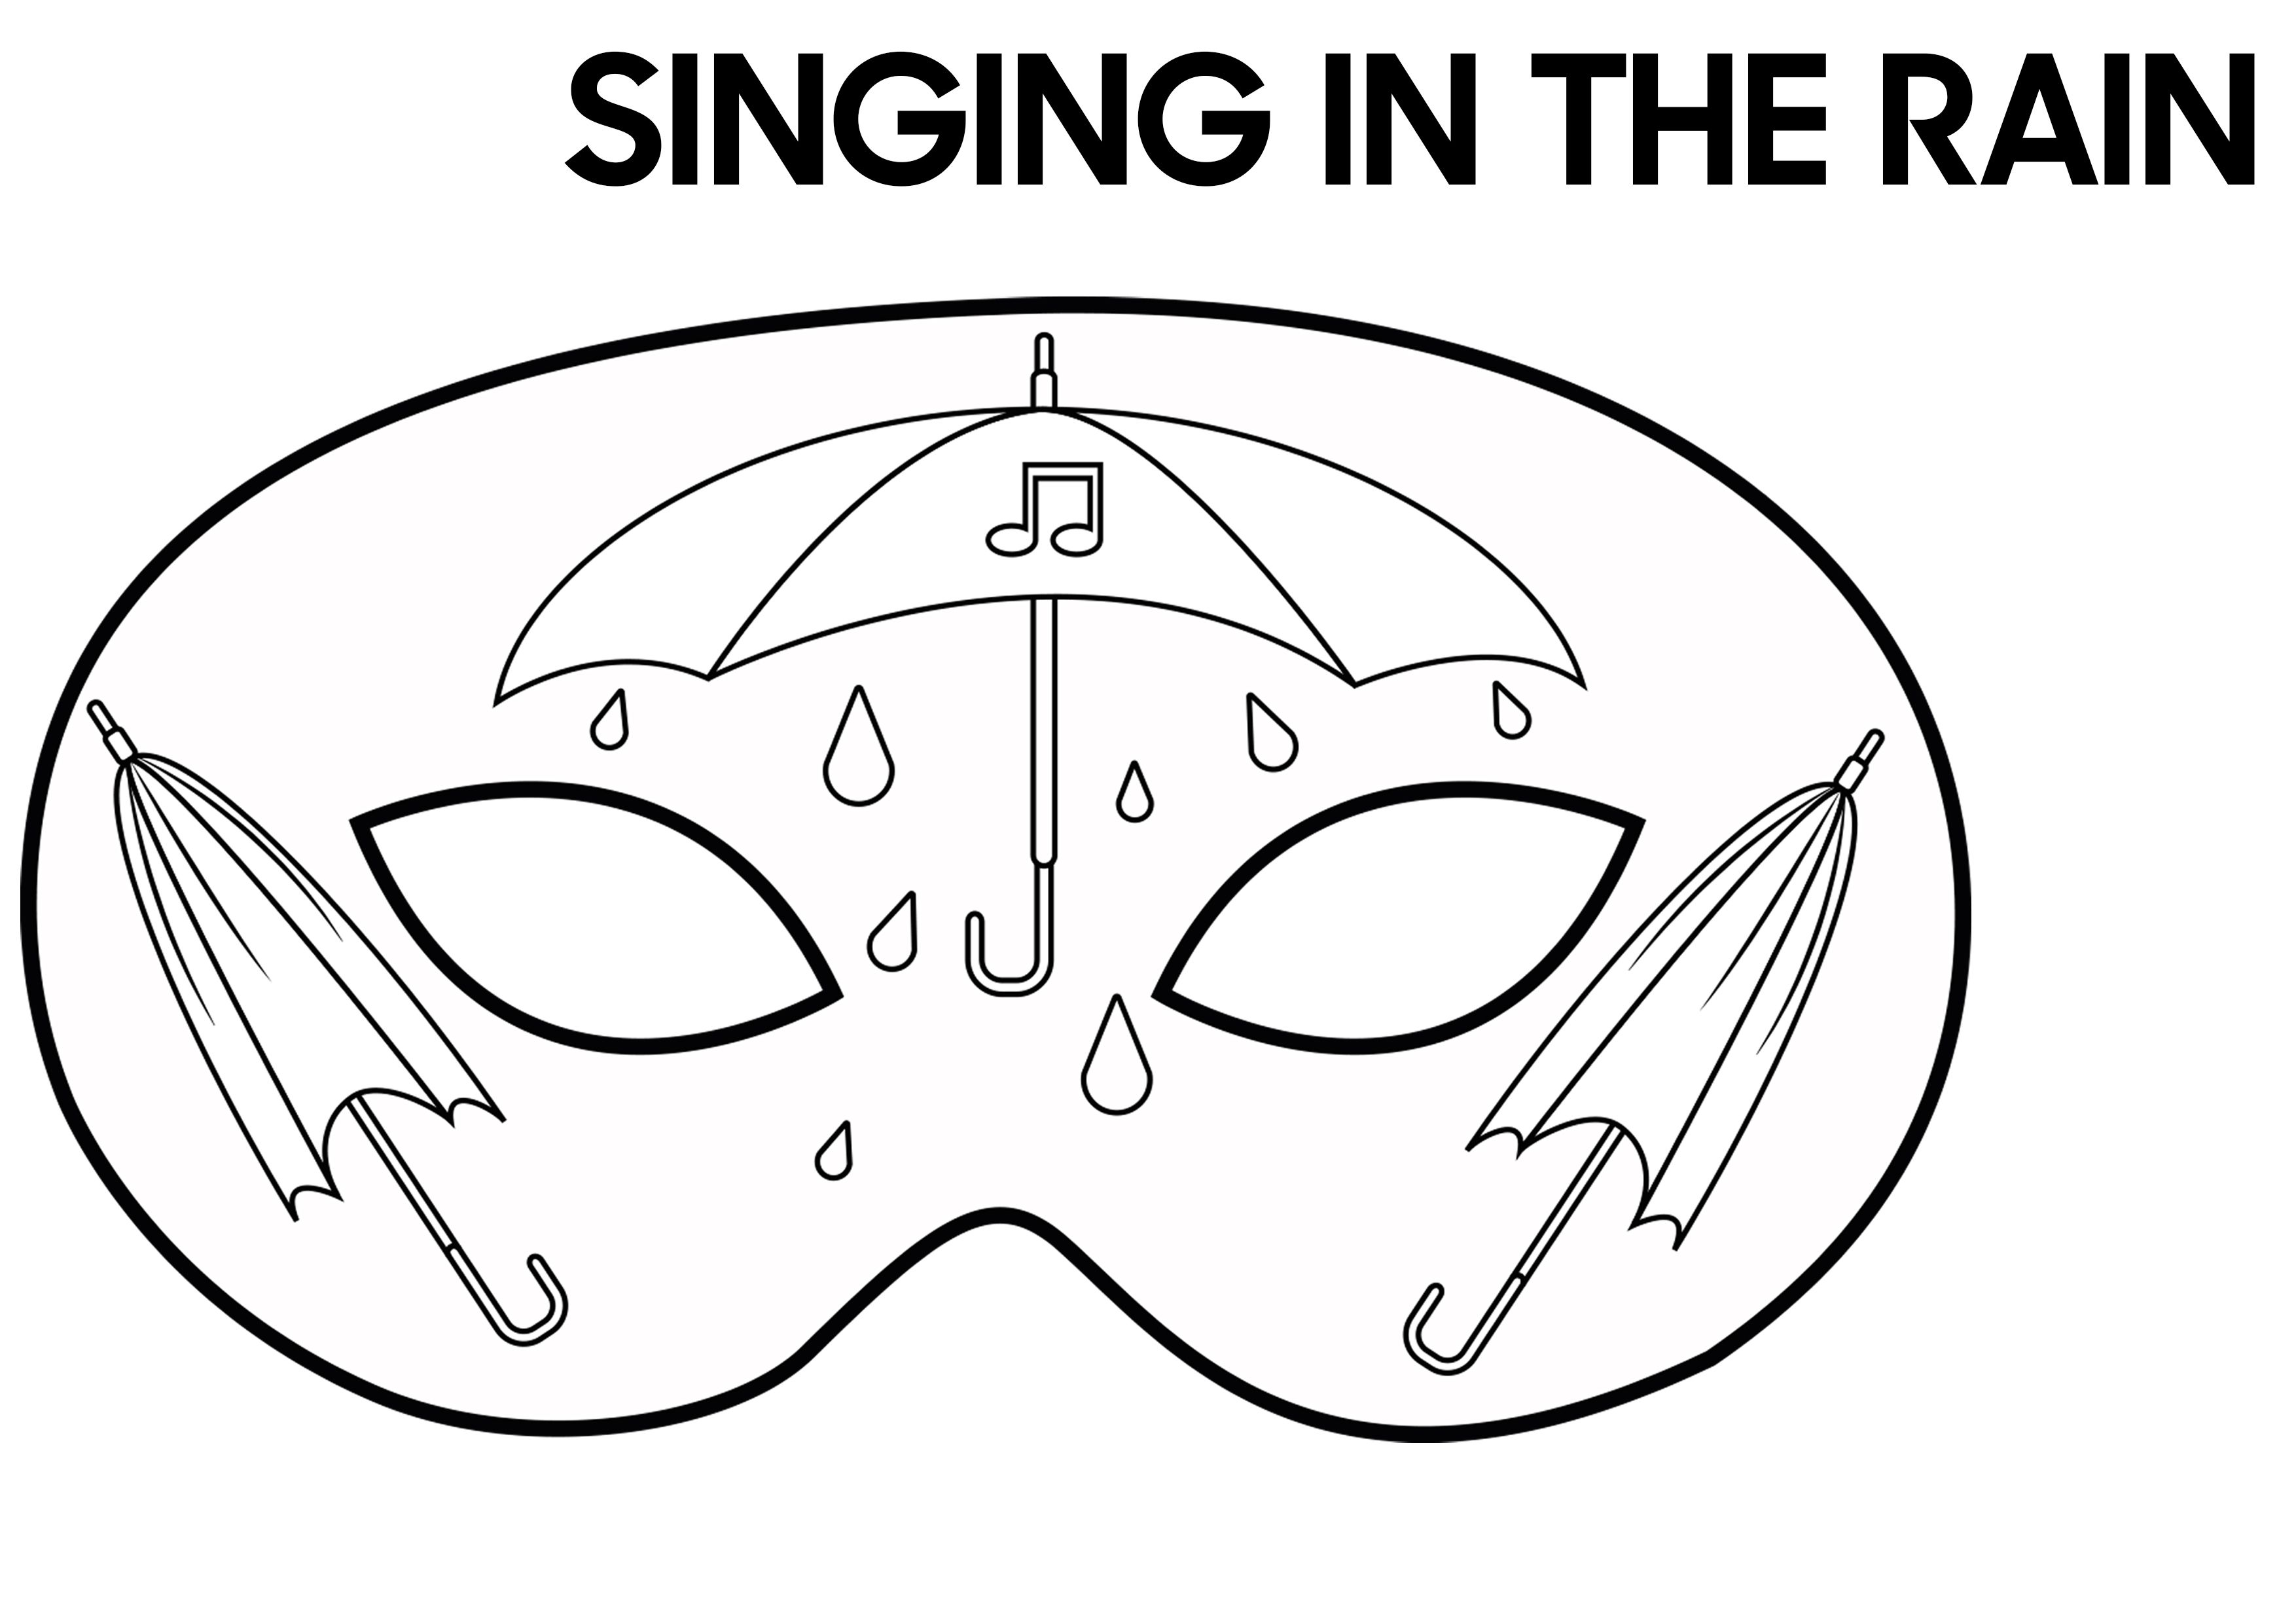 SINGING-IN-THE-RAIN inspired mask